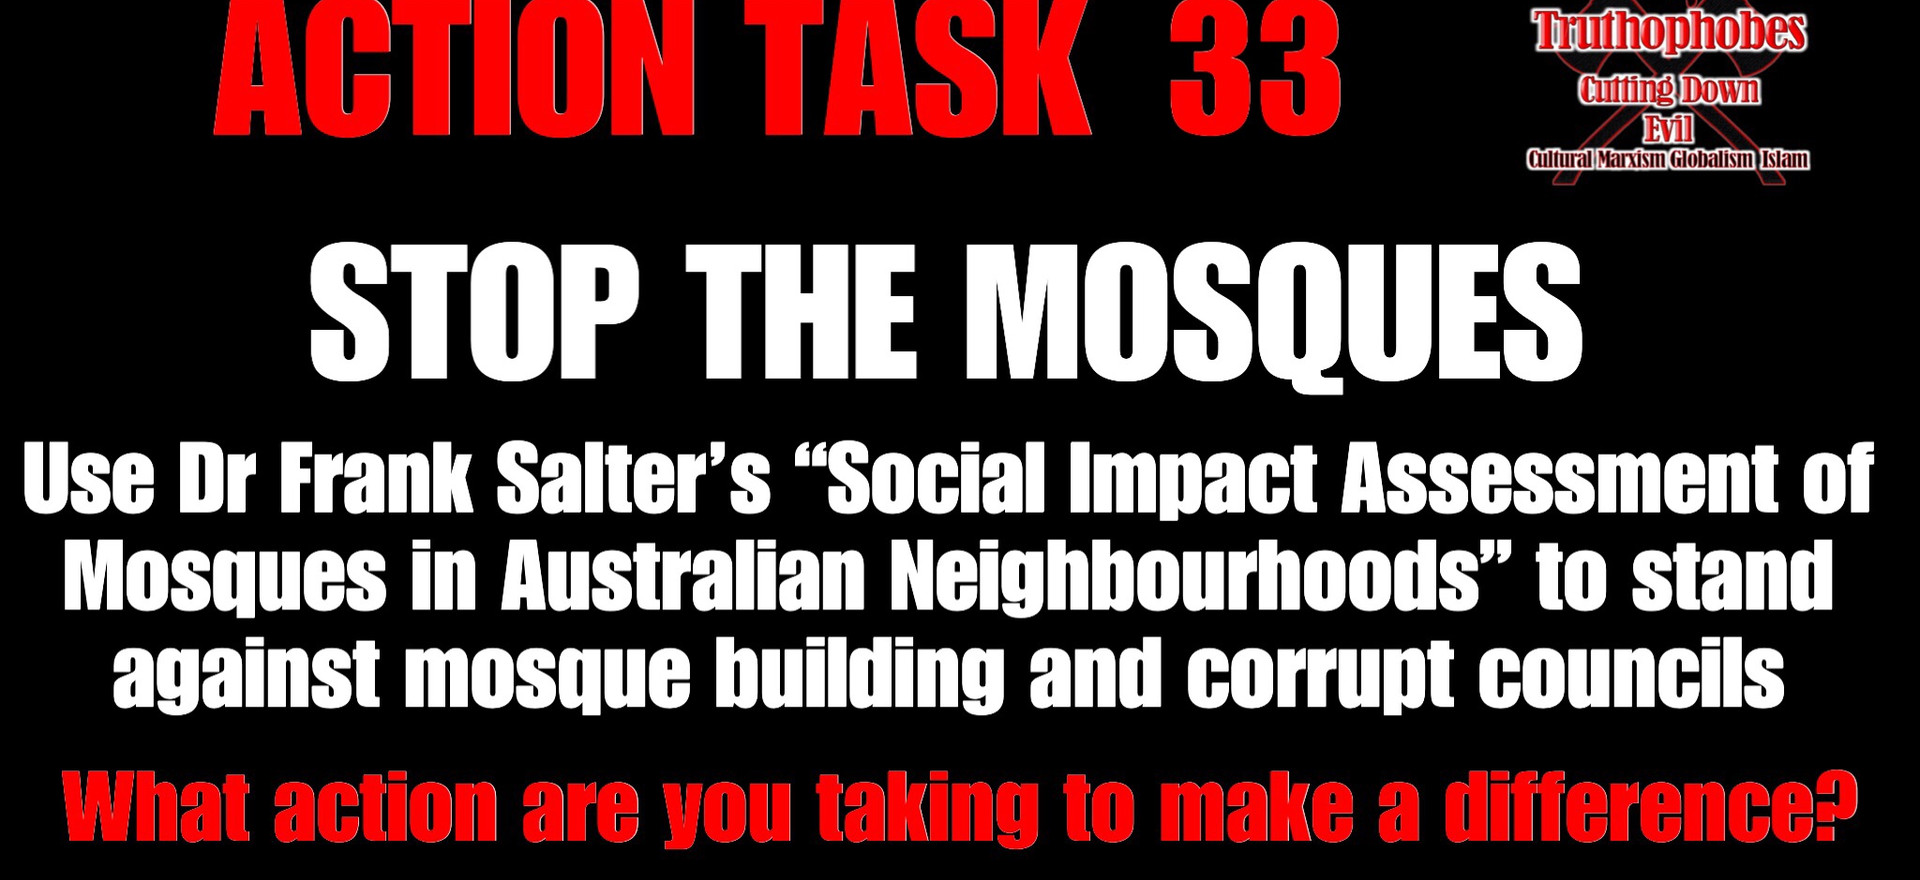 STOP THE MOSQUES